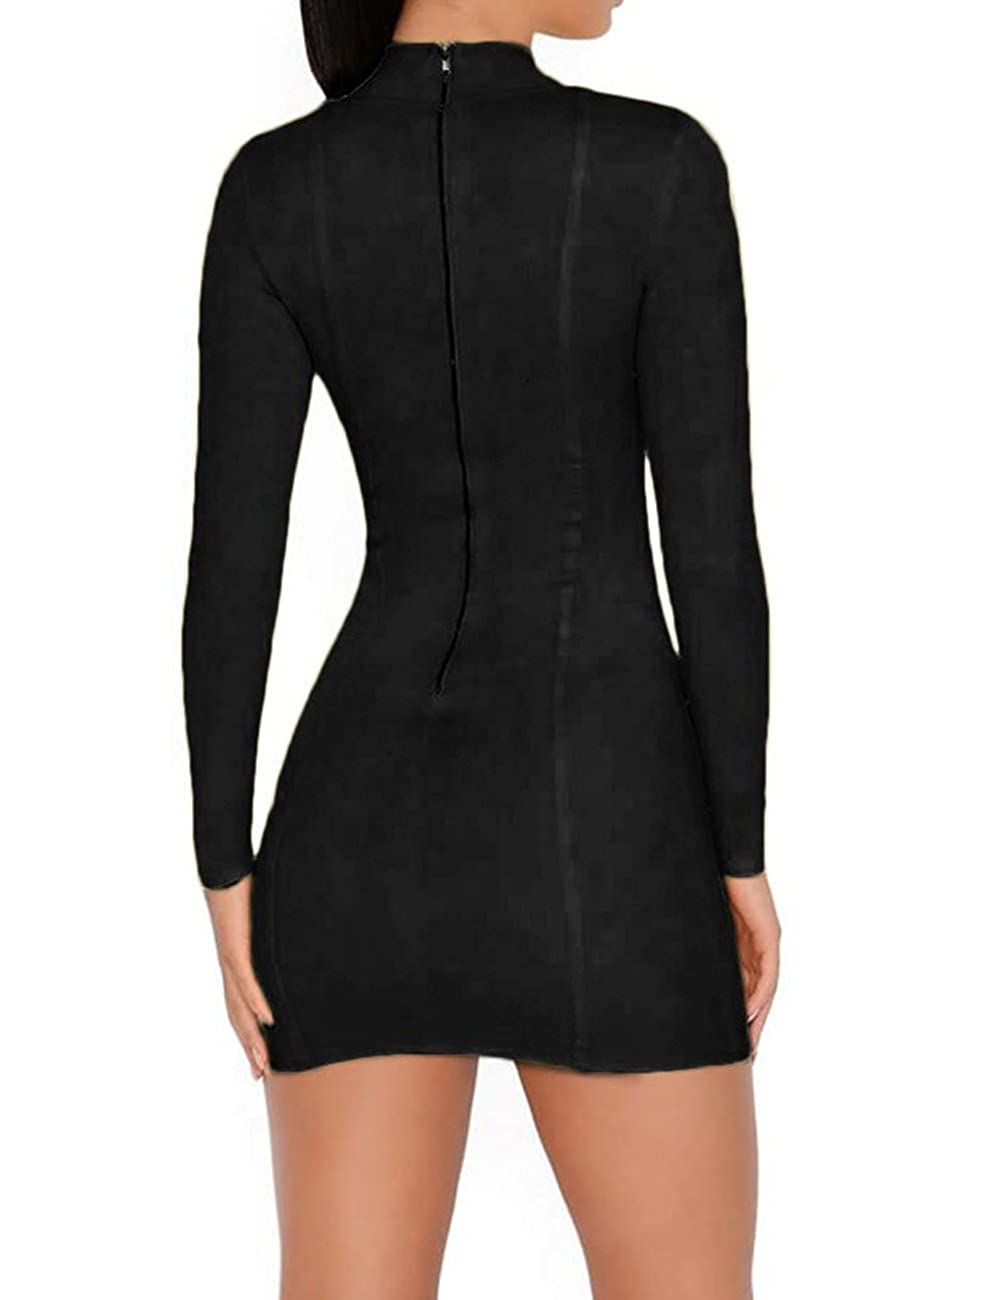 whoinshop Womens Long Sleeves Lace Up Open Front High Neck Clubwear Mini Party Bandage Dress